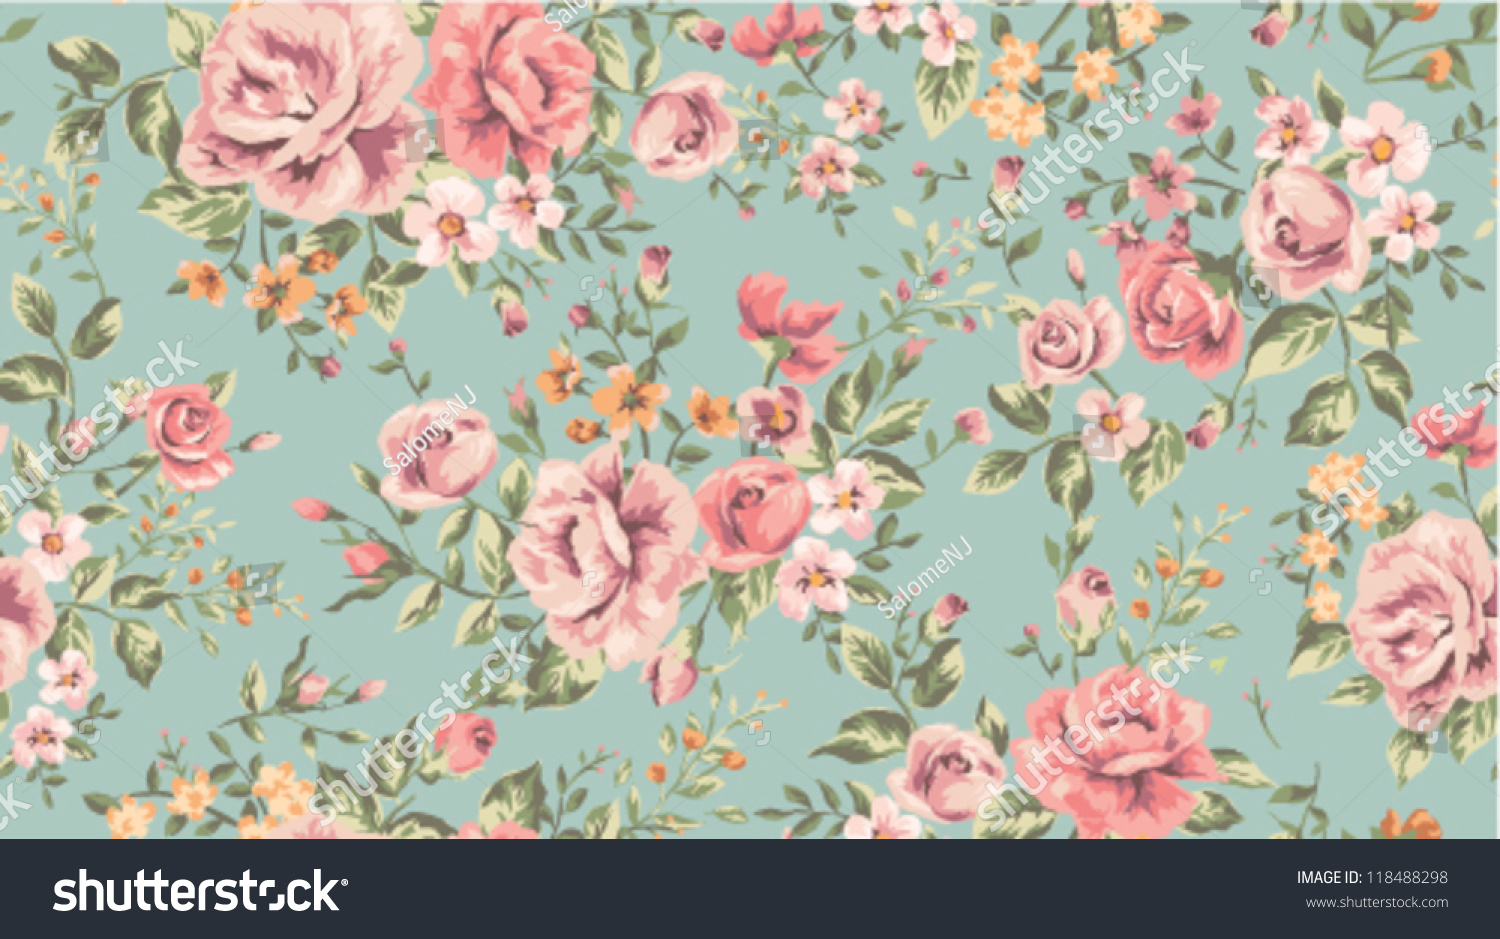 Classic Wallpaper Seamless Vintage Flower Pattern Stock Vector Royalty Free 118488298